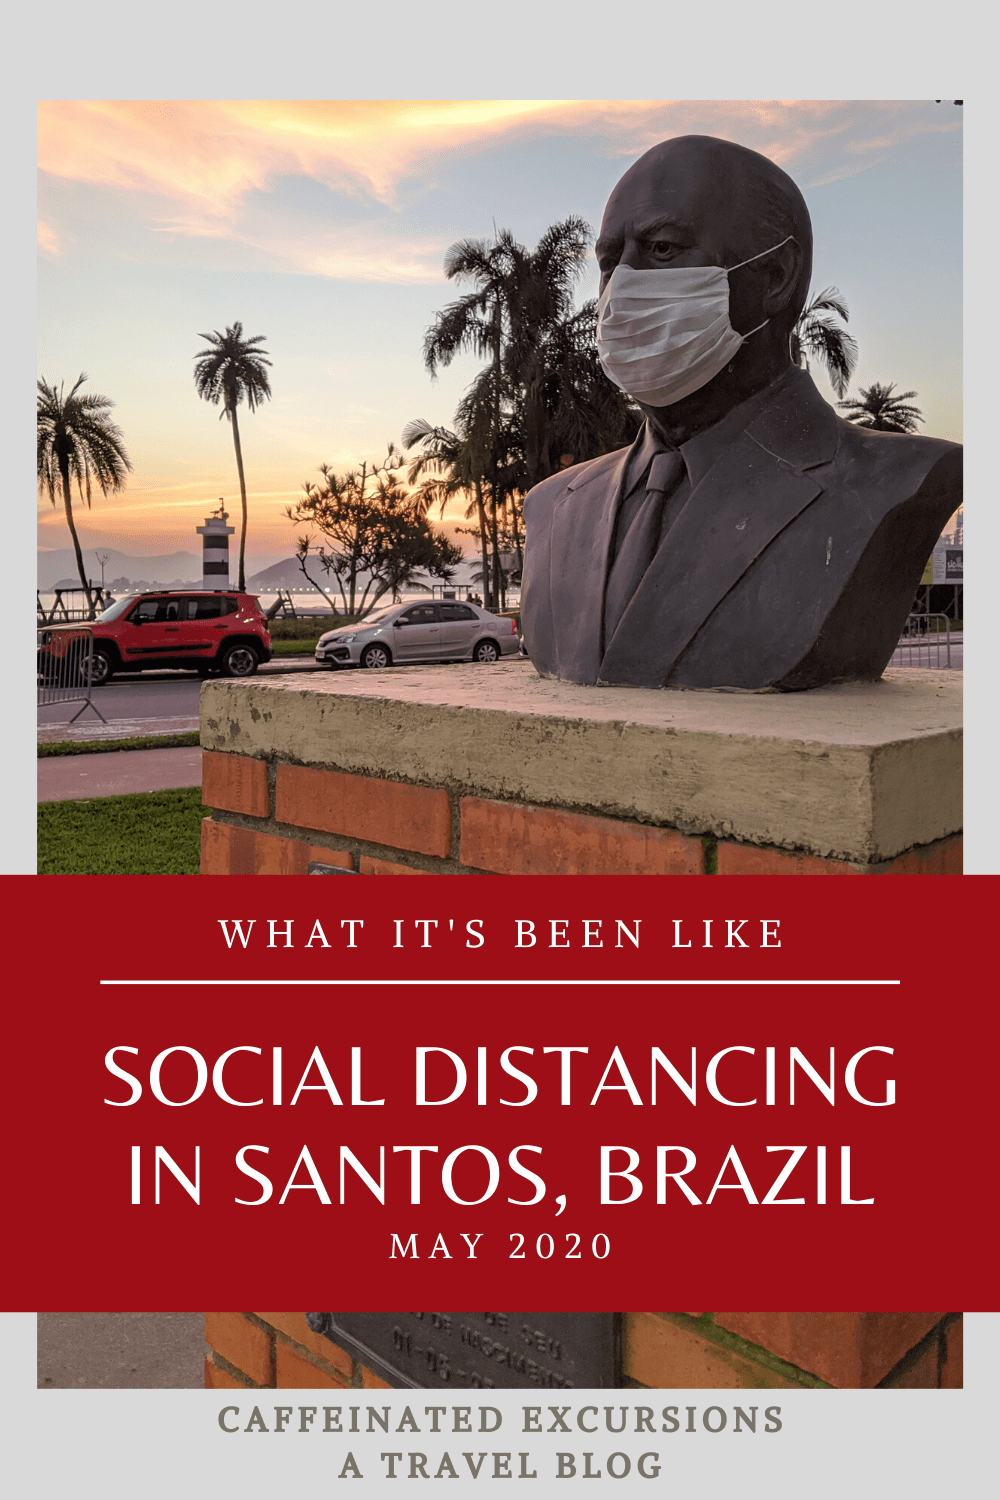 Check out this post to learn about what it's been like #SocialDistancing in #Santos, #SaoPaulo, #Brazil! #SãoPaulo #SPBrazil #SPBrasil #SP #Brasil #SouthAmerica #TravelBlog #TravelBlogs #TravelBlogger #TravelBloggers #AmericanAbroad #AmericansAbroad #Quarantine #COVID19 #Pandemic #WearAMask #LivingThroughHistory #FlattenTheCurve #SantosBrazil #SantosBrasil #SãoVicente #SãoVicenteBrazil #SãoVicenteBrasil #SãoVicenteSãoPaulo #SãoVicenteSP #SaoVicenteSaoPaulo #Brasil2020 #TravelRestrictions